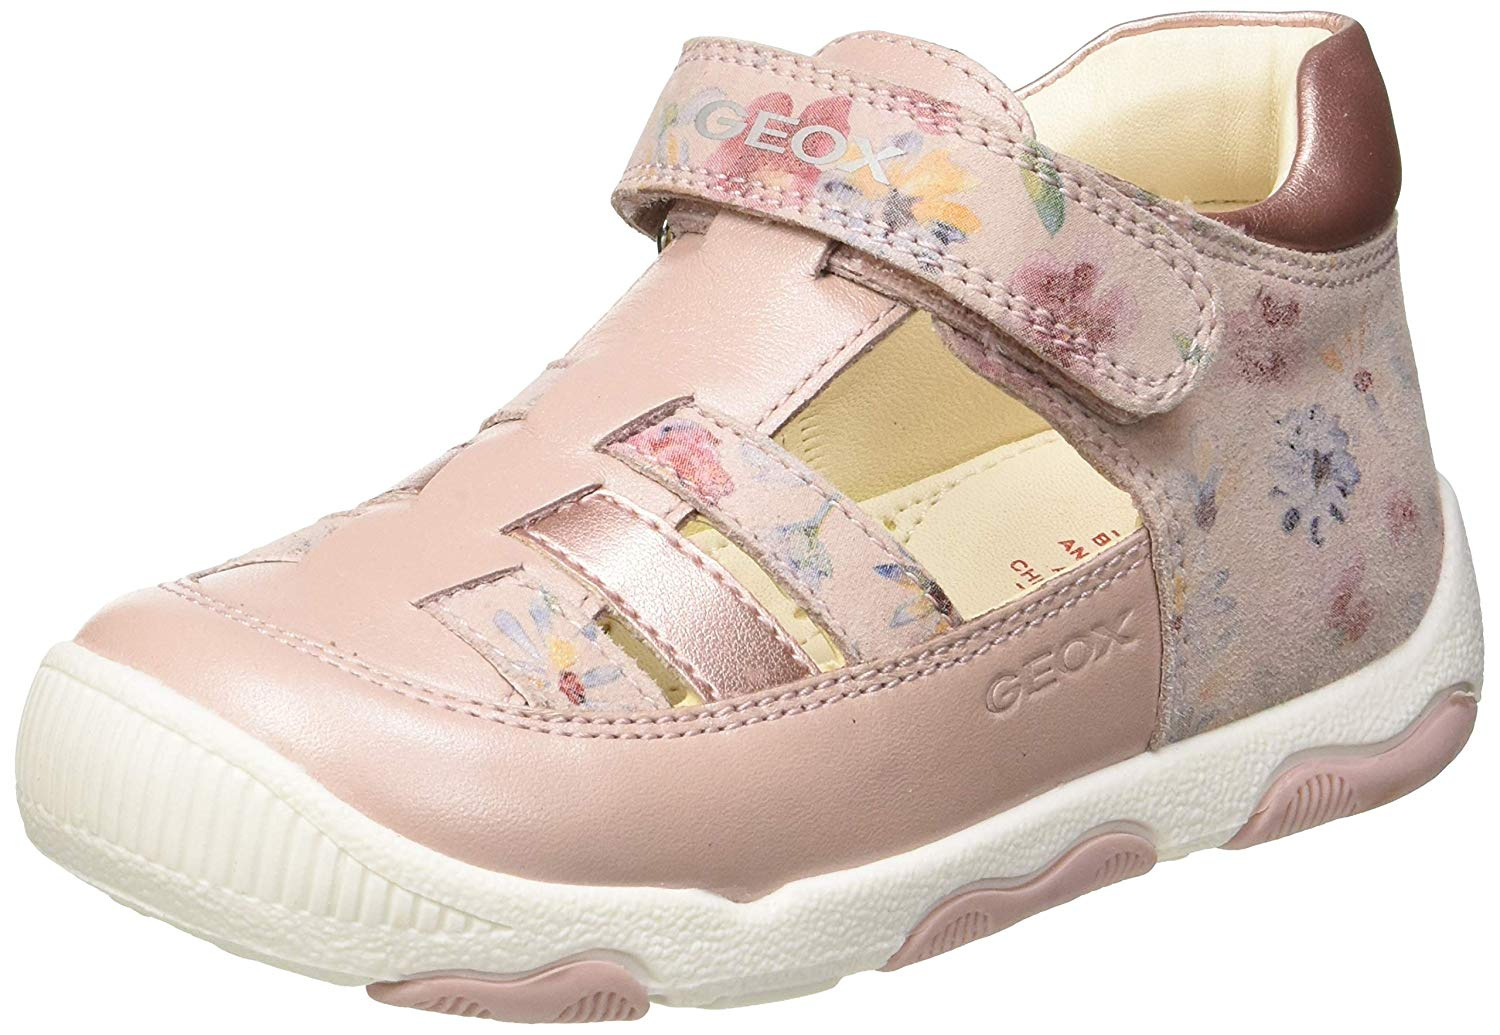 sunnymi For 0-3 Years Old Kids Newborn Infant Toddler Baby Girls Fabric Sneaker Soft Sole Sandals Crib Princess Anti-Slip Cute Shoes 0-6 Months, Pink